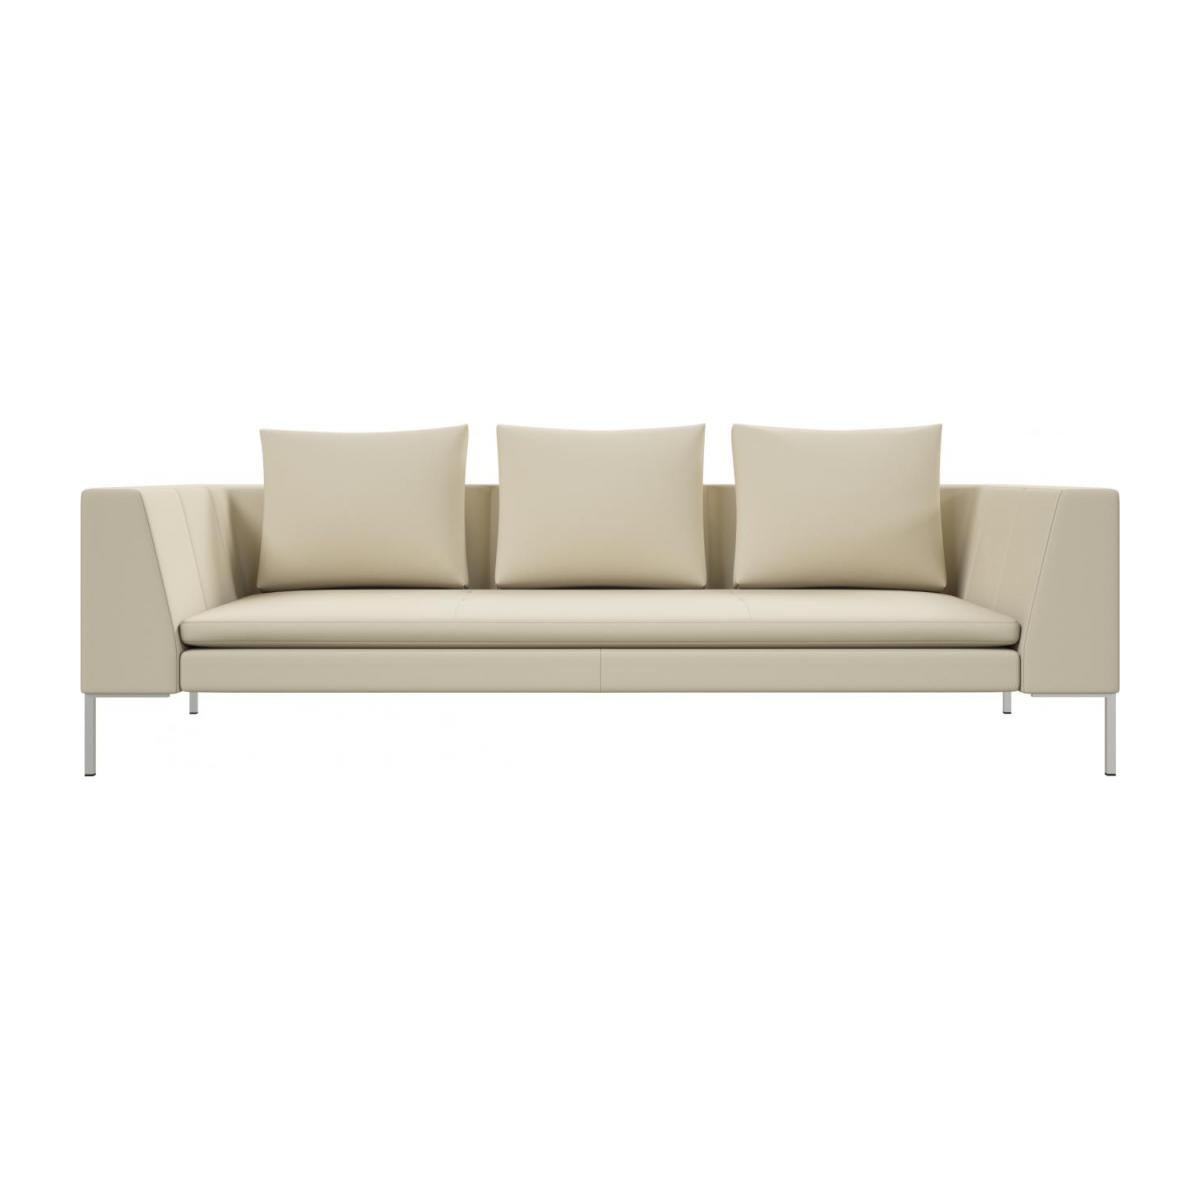 3 seater sofa in Savoy semi-aniline leather, off white n°2